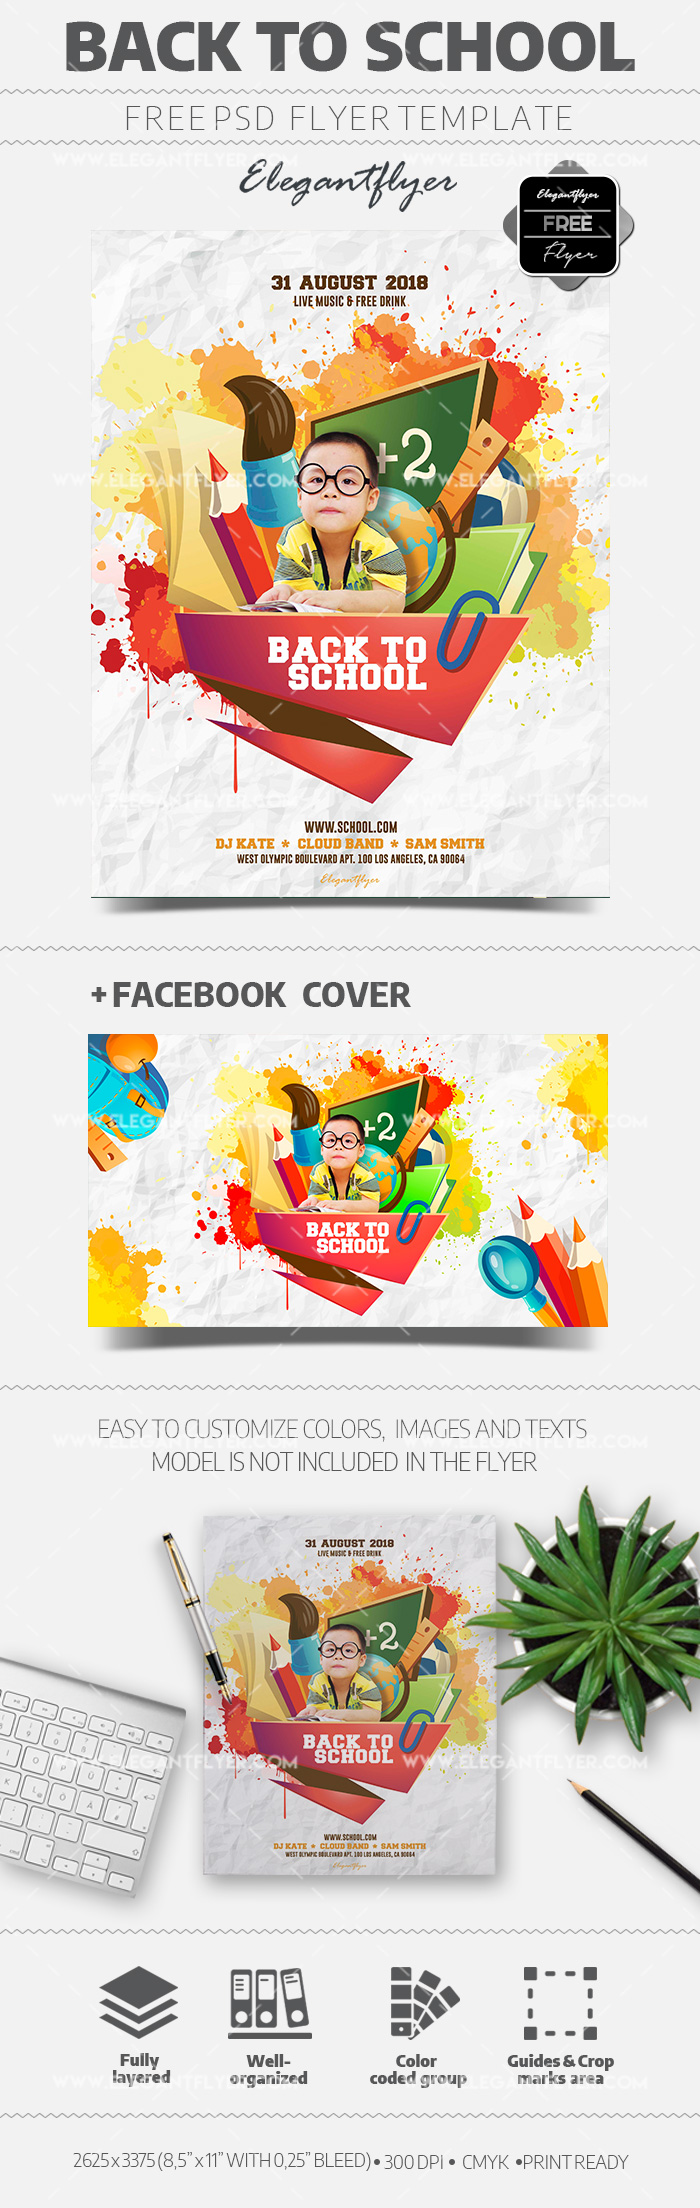 Back To School Party Free Flyer Psd Template By Elegantflyer